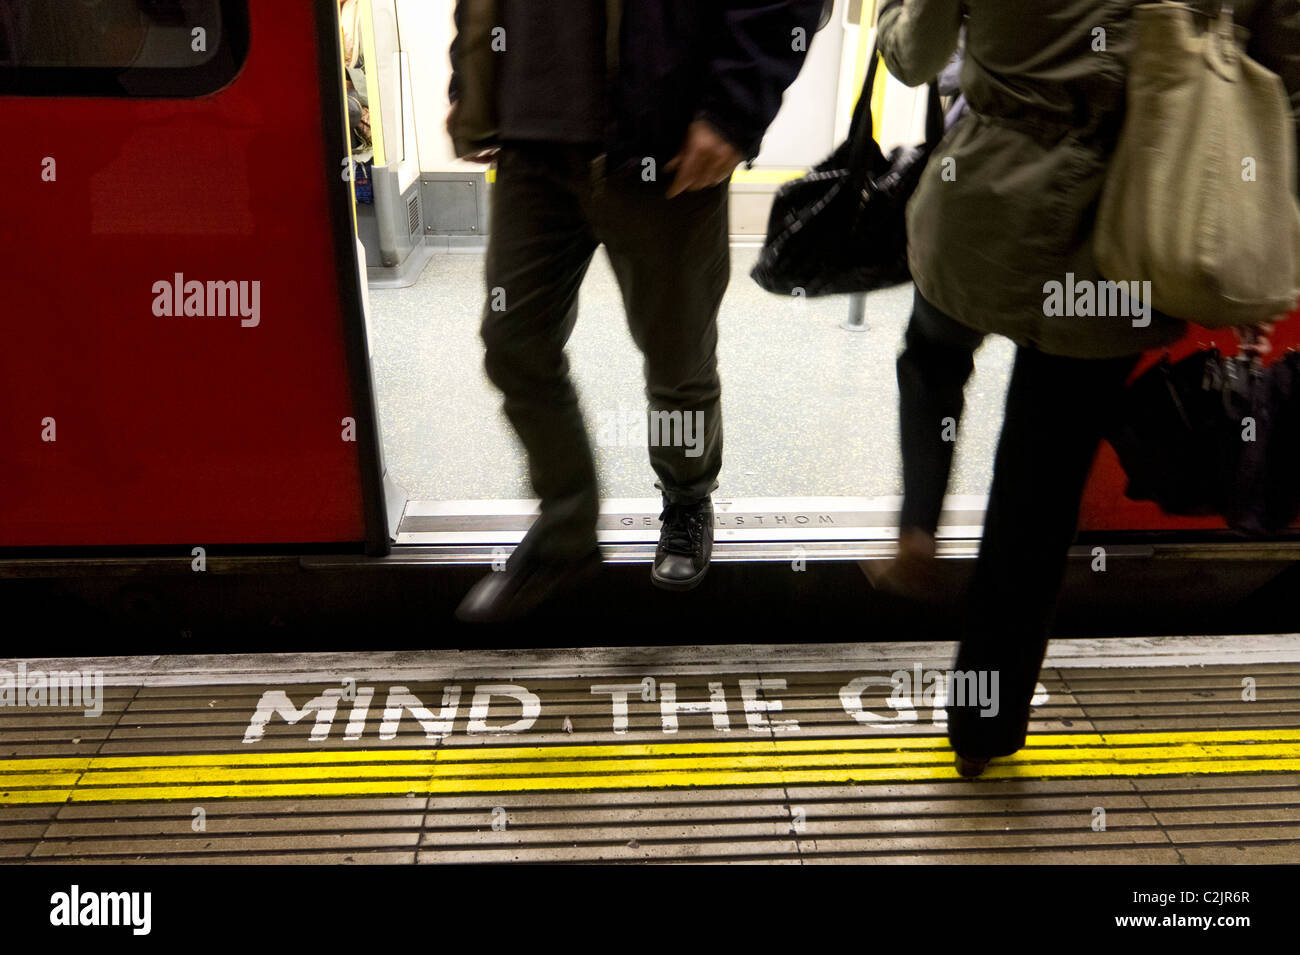 People exit and enter a London Underground tube train over a